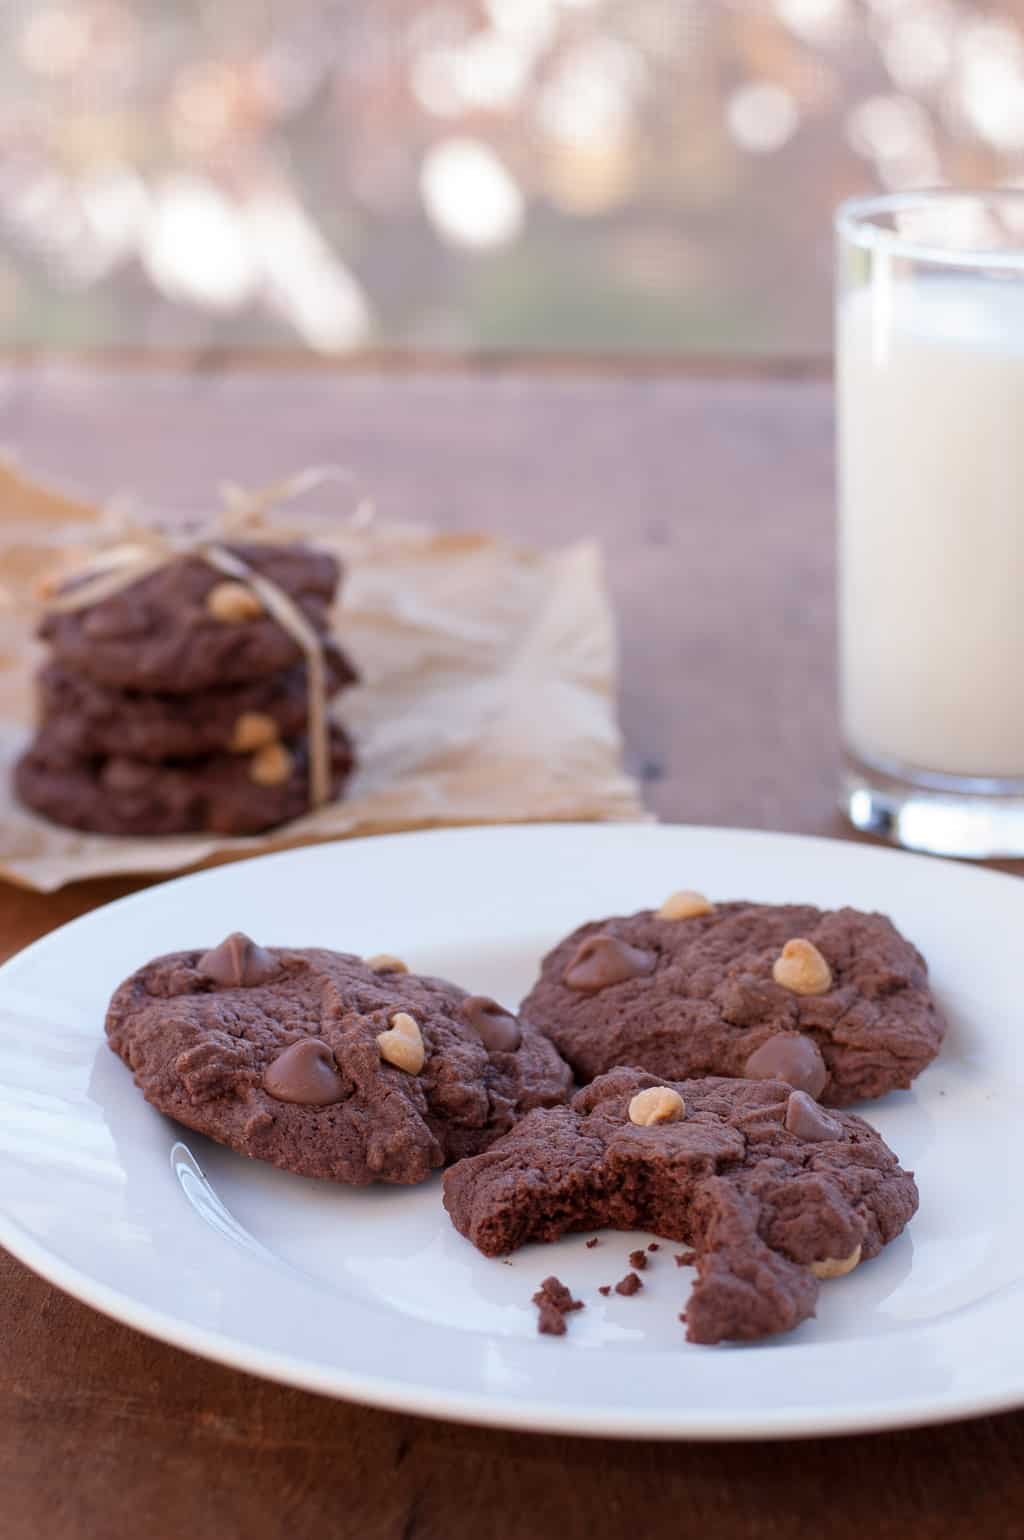 Forget Your Diet Cookies a.k.a. Chocolate Peanut Butter Cookies